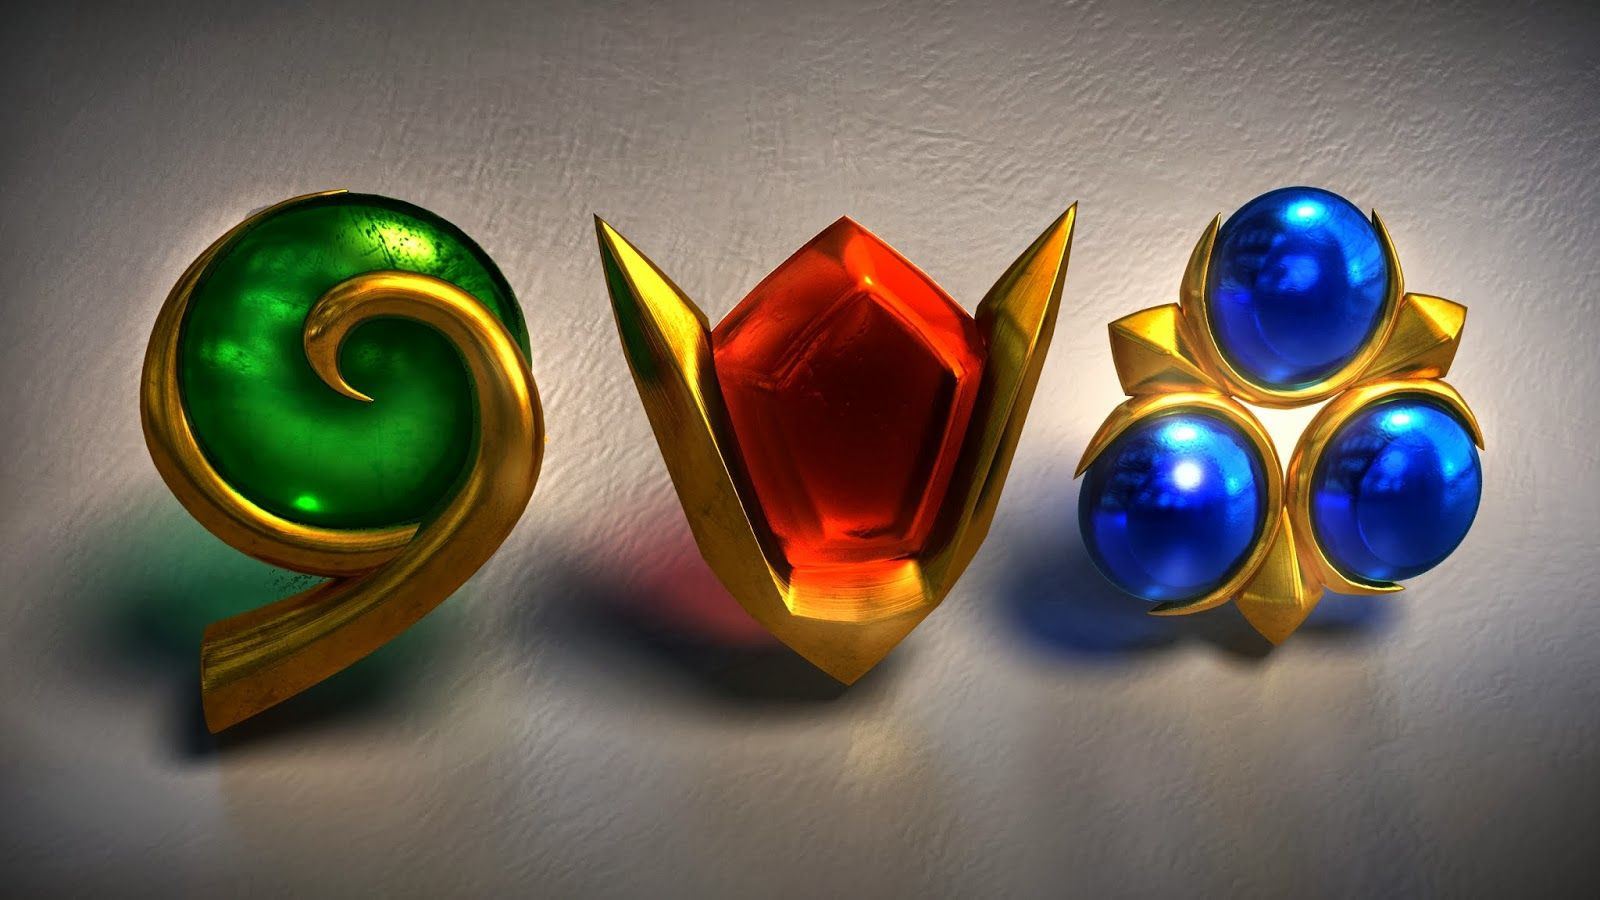 Ocarina of Time; Gem Icon could have ornamental adornment